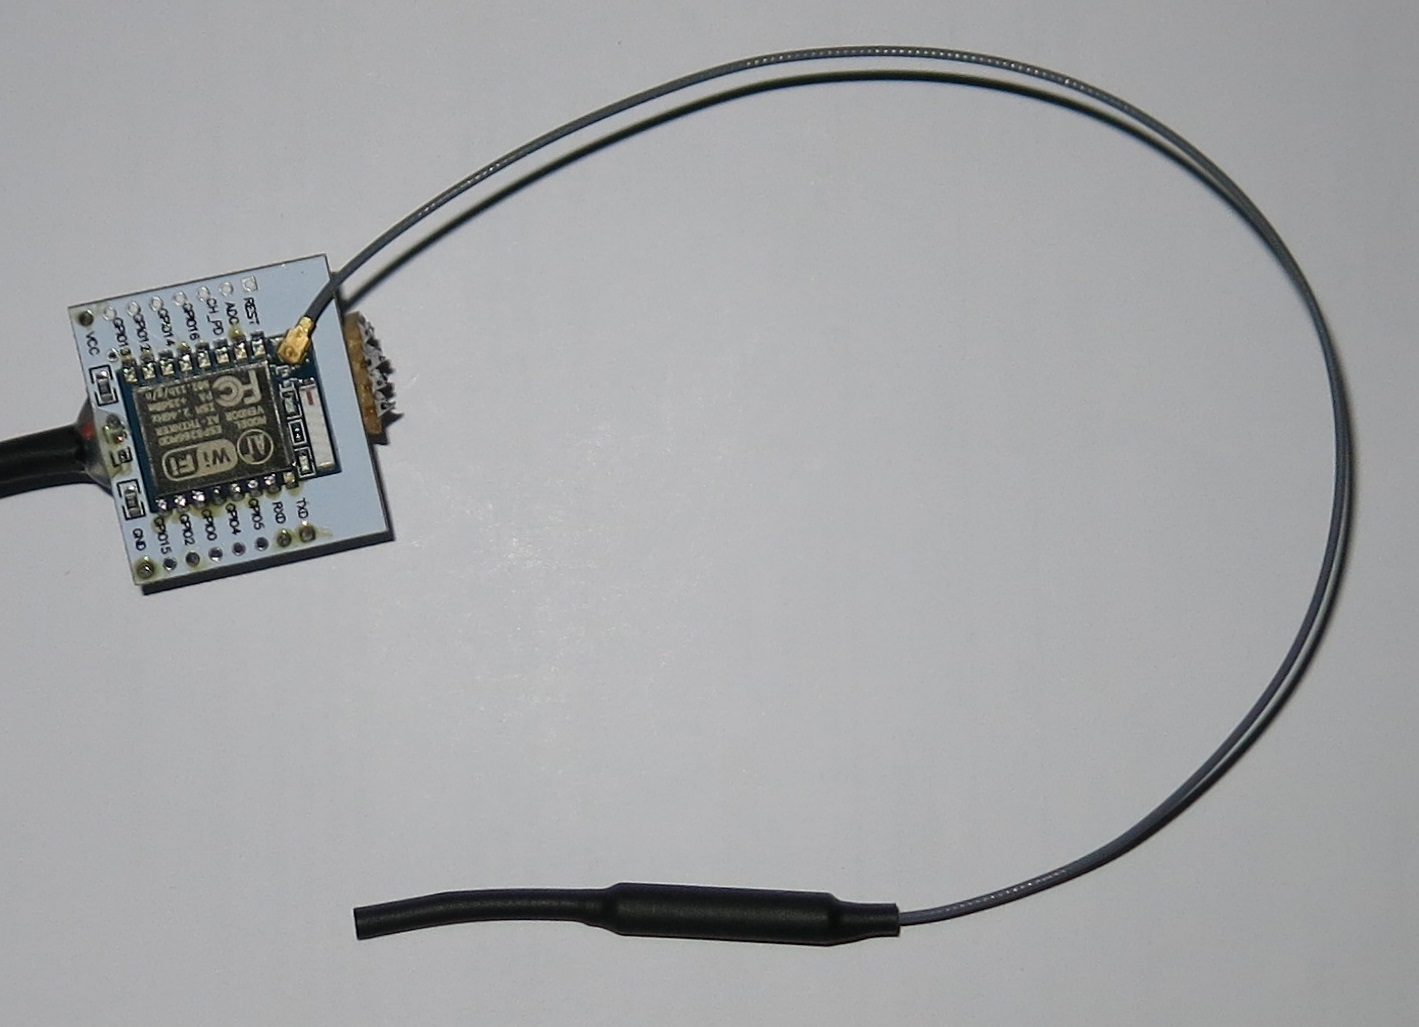 esp-07-with-external-antenna